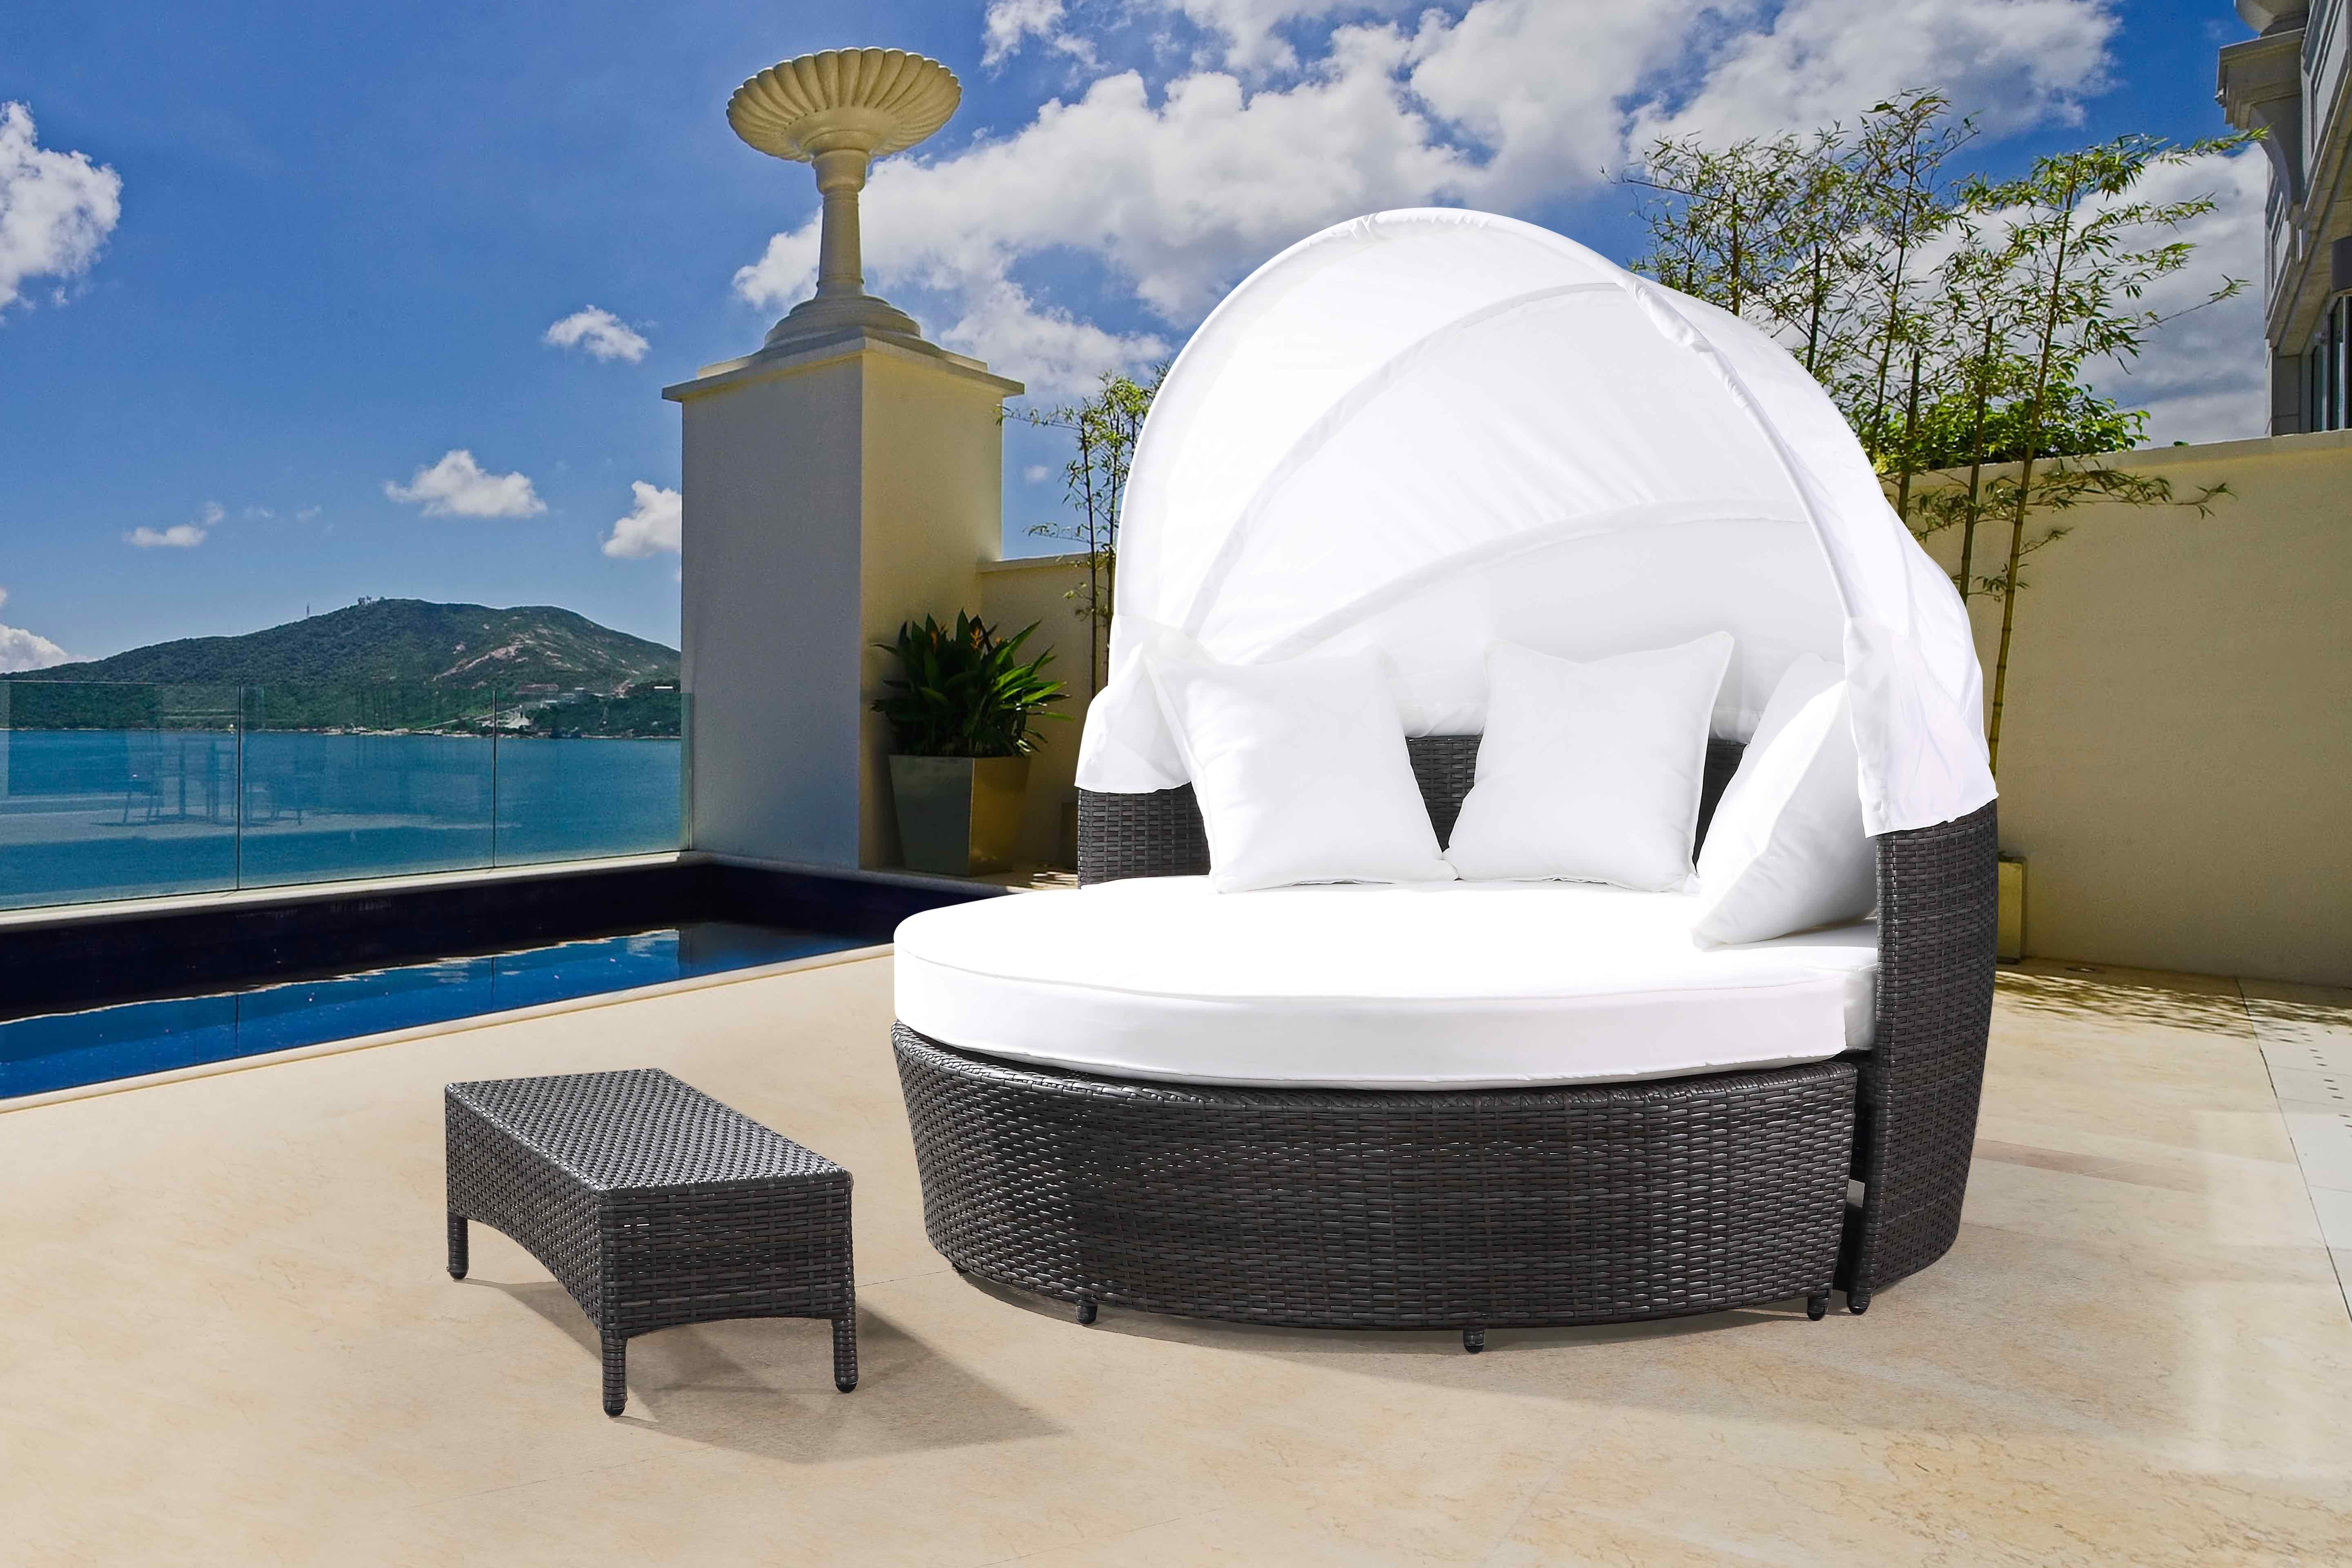 Carrasco Patio Daybed With Cushions Within Well Known Brentwood Patio Daybeds With Cushions (View 8 of 25)